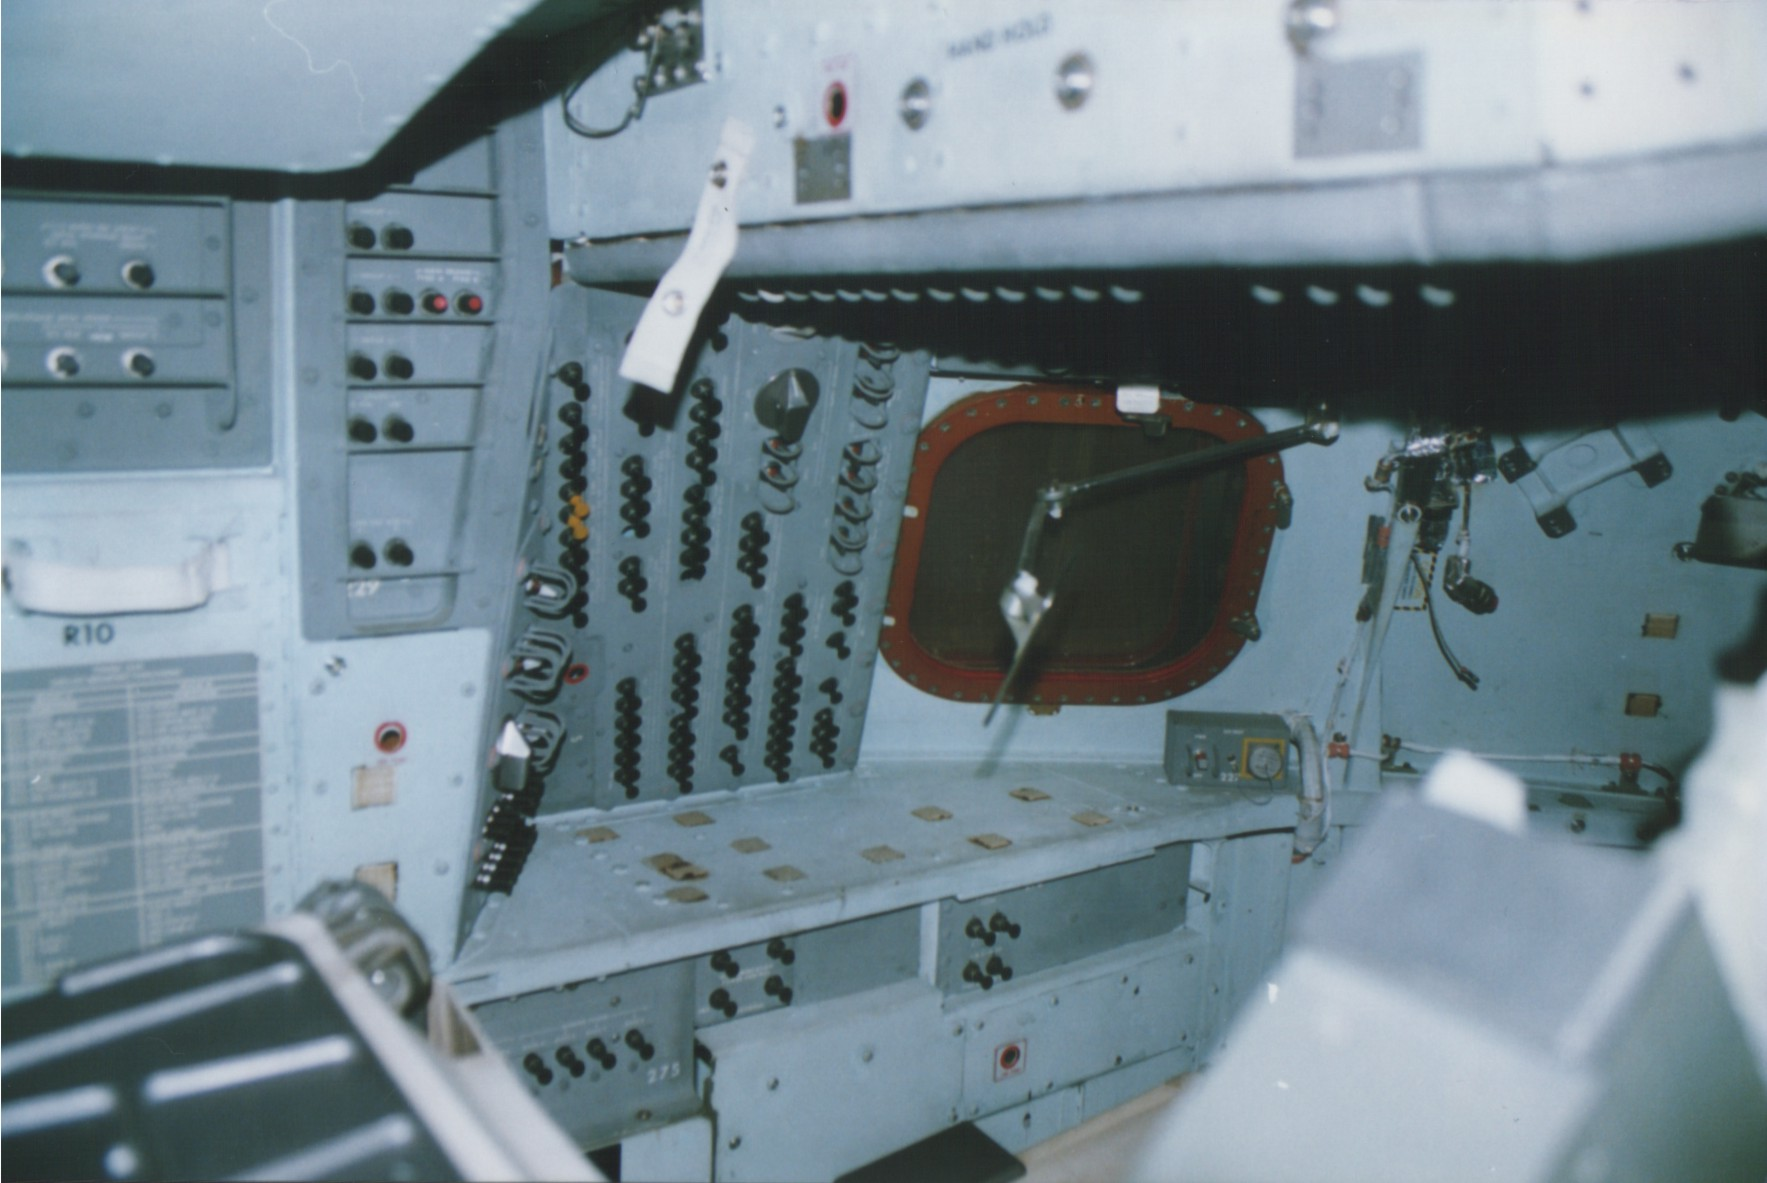 apollo capsule control panel - photo #11